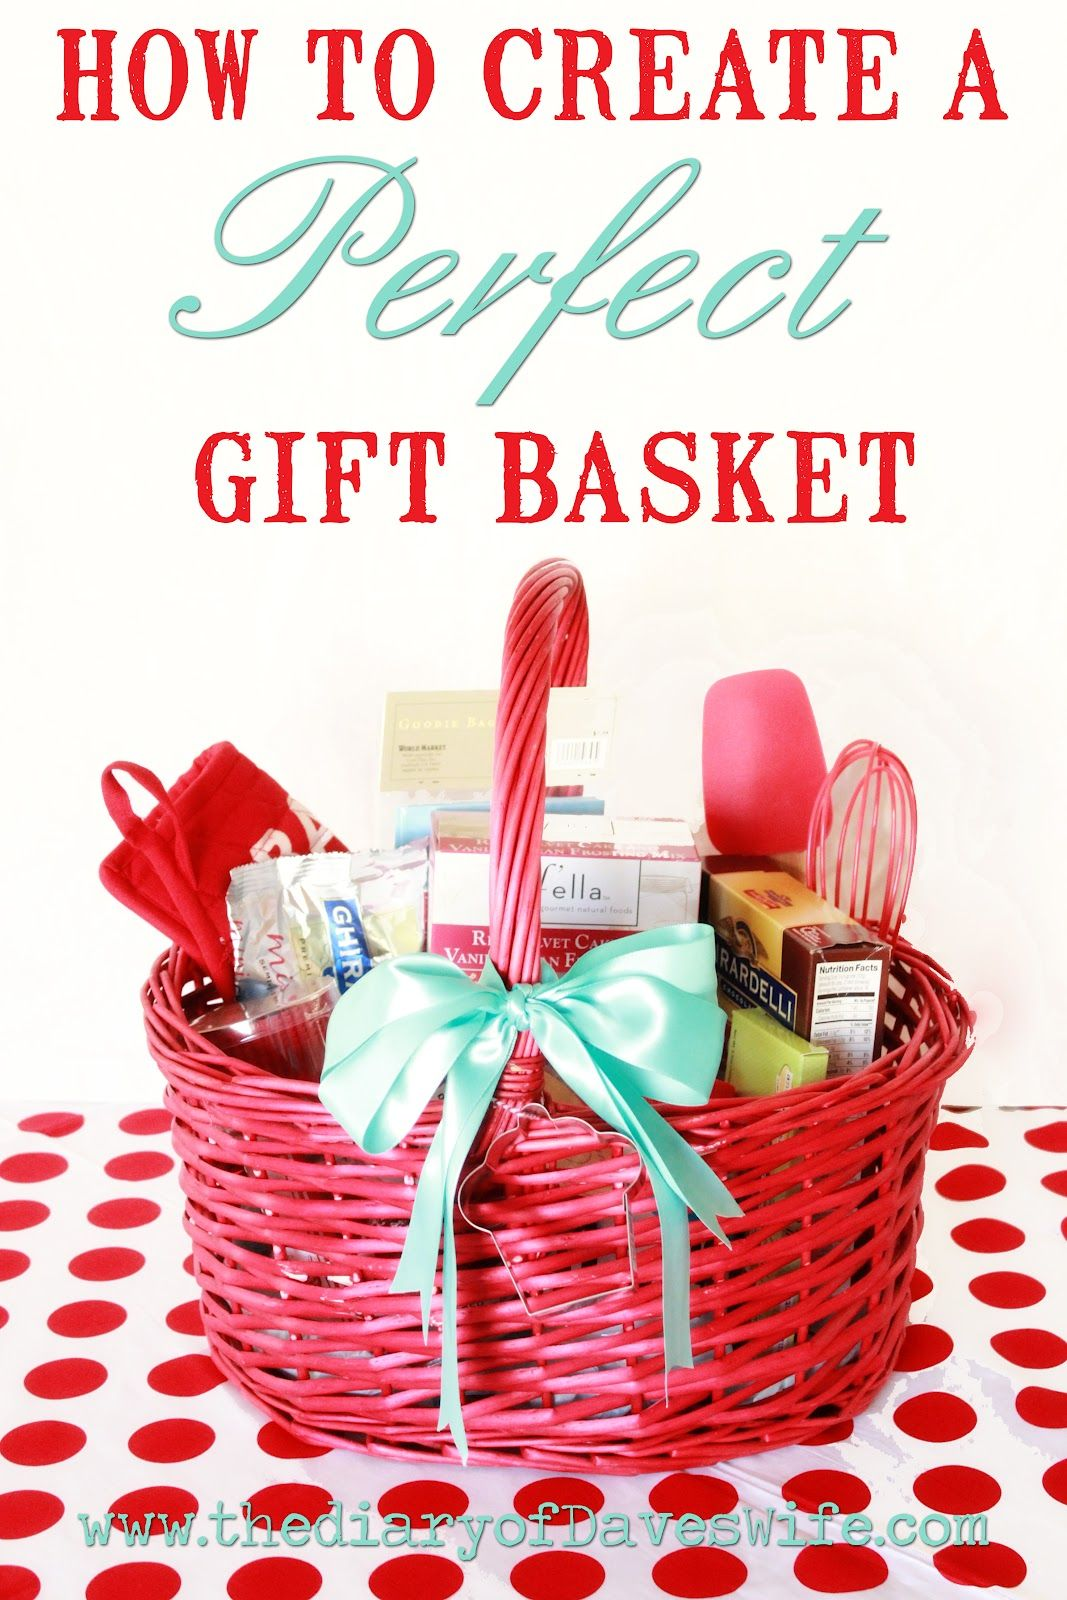 love this great ideas themes for putting together great gift baskets